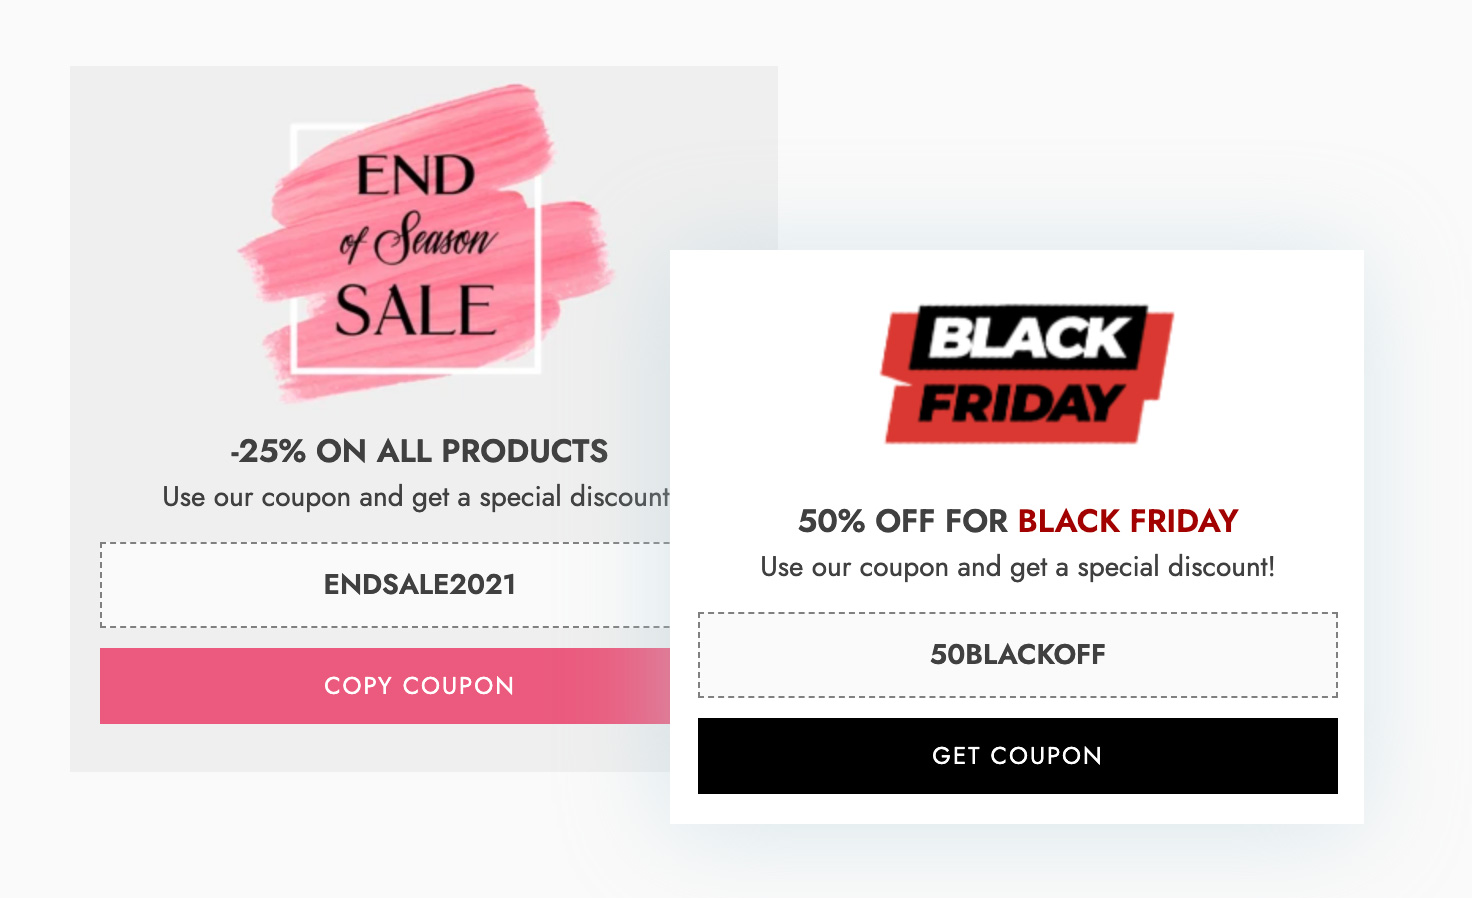 Coupons notifications - Black Friday and End of season sale